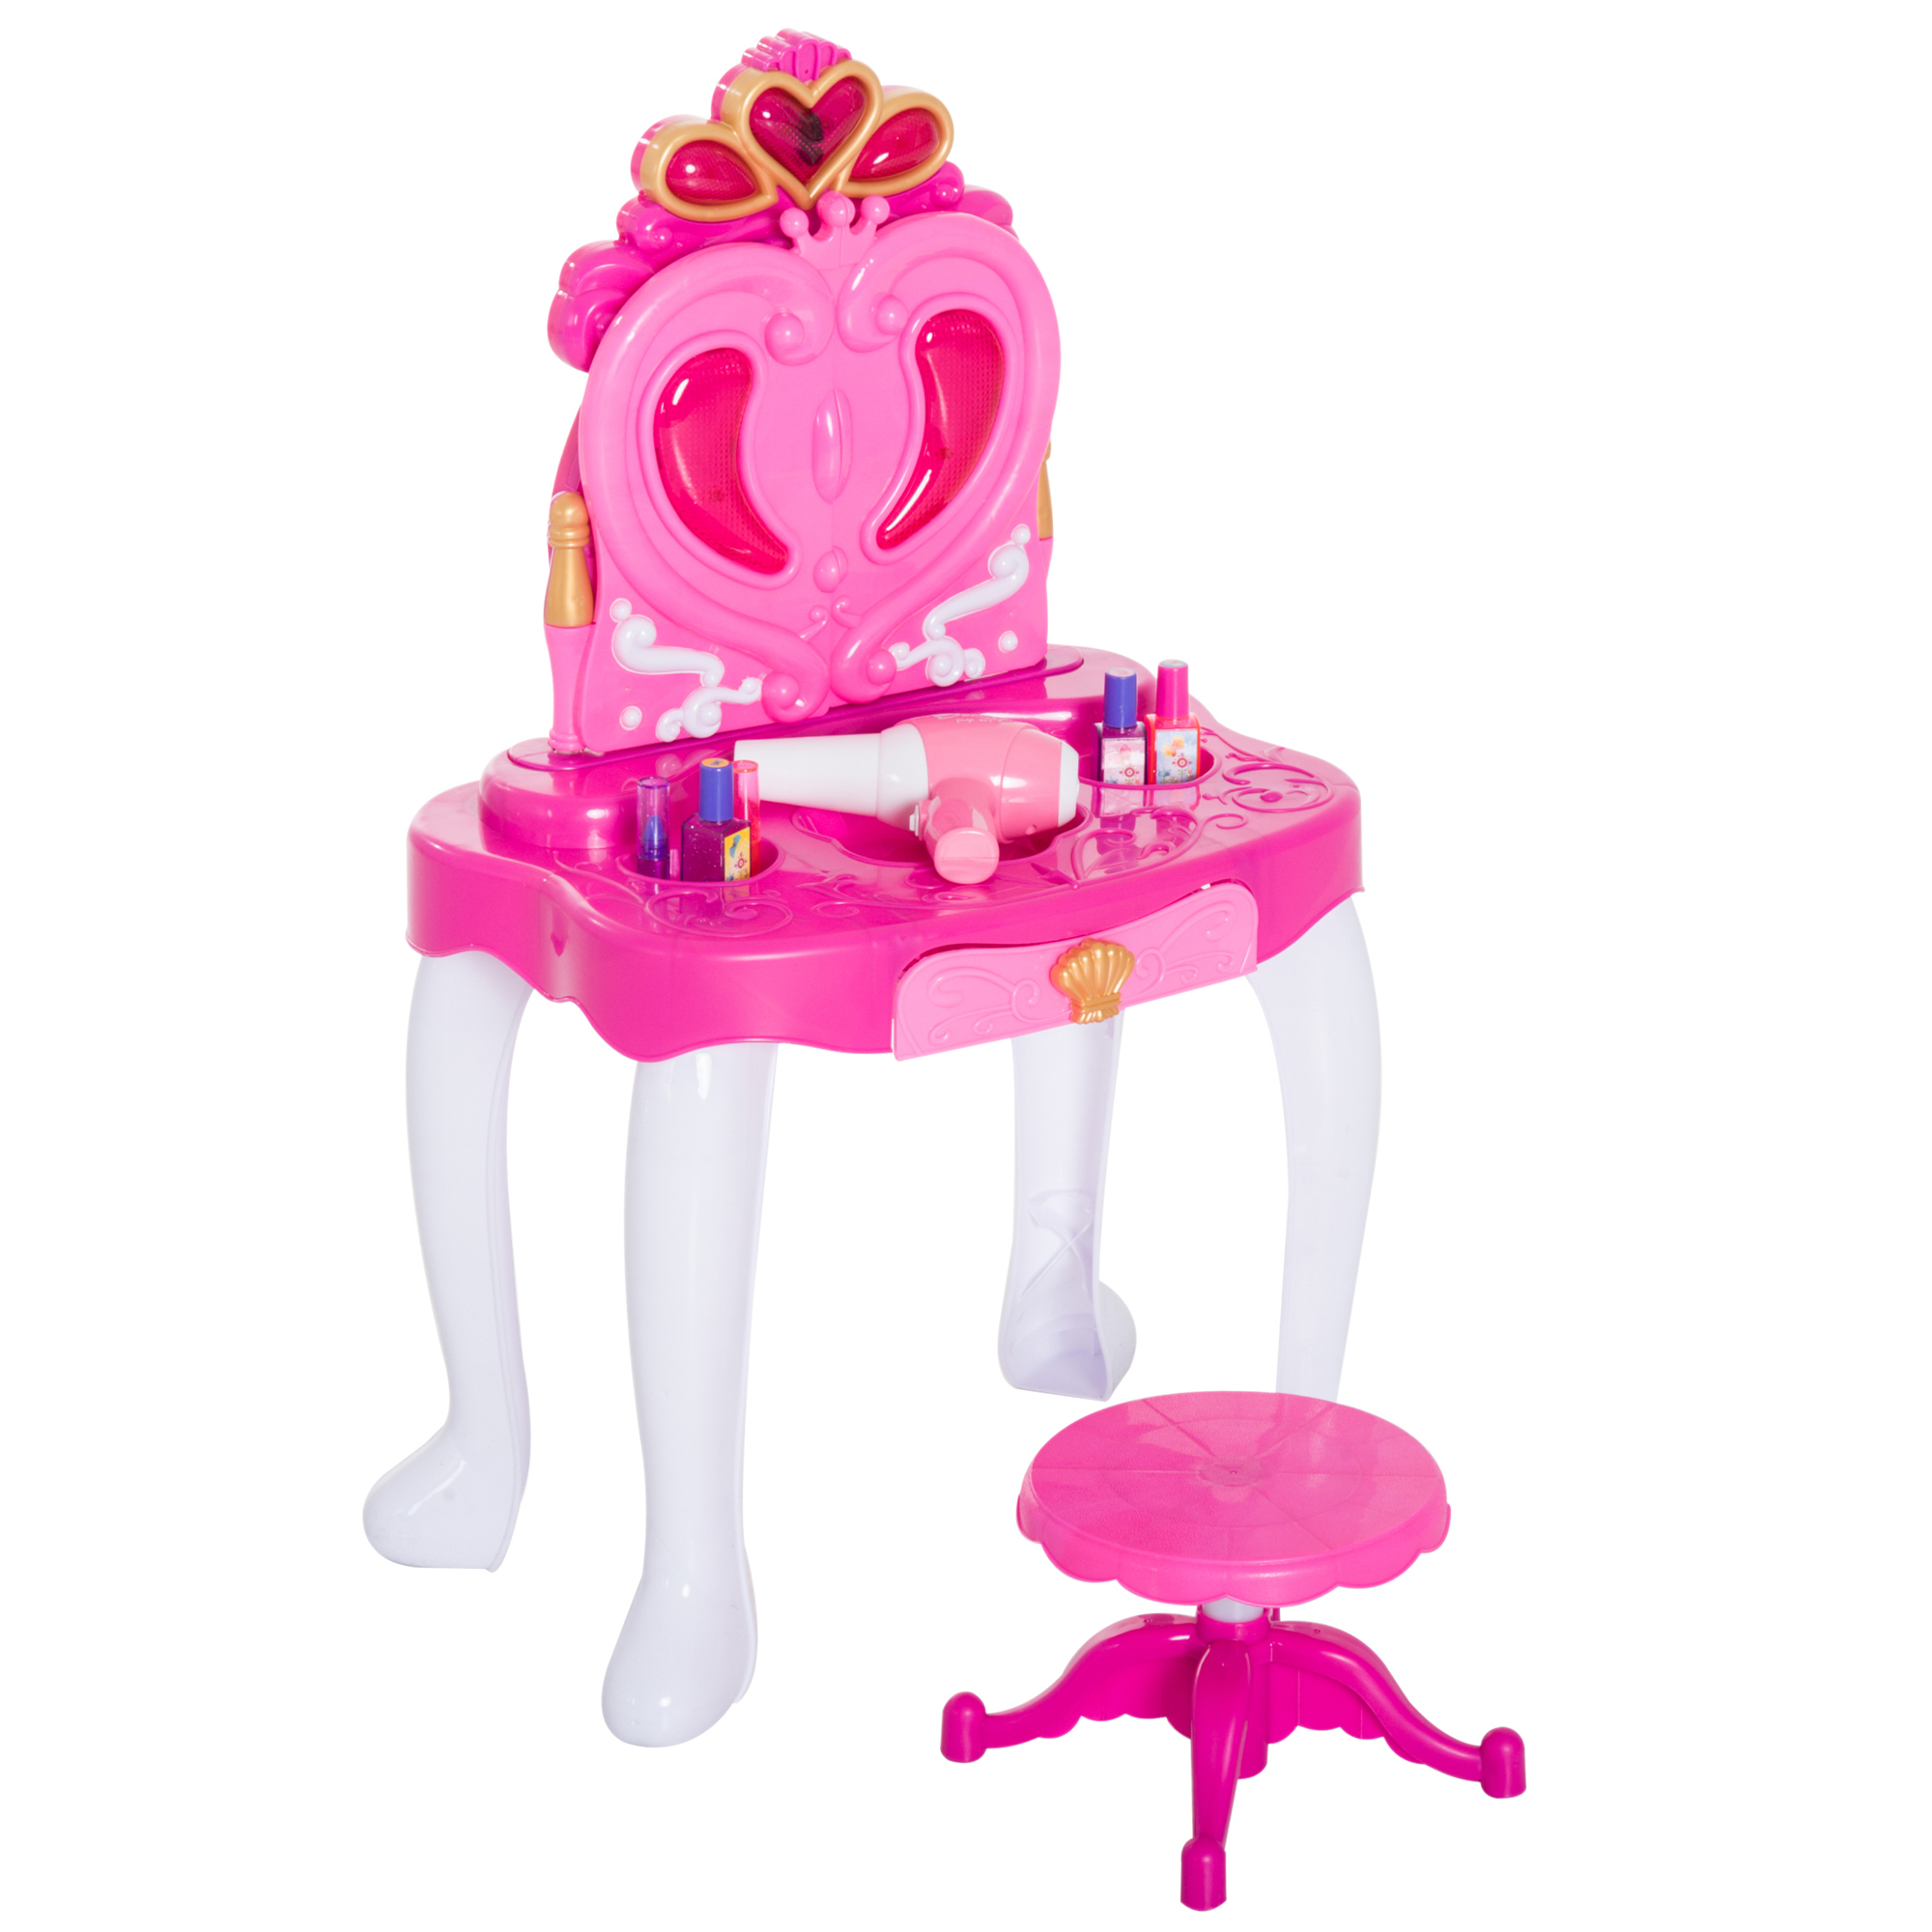 HOMCOM Makeup Table With Stool Dressing Table For Baby Girl With Lights And Music 43.5x31.5x72.5 Cm Pink